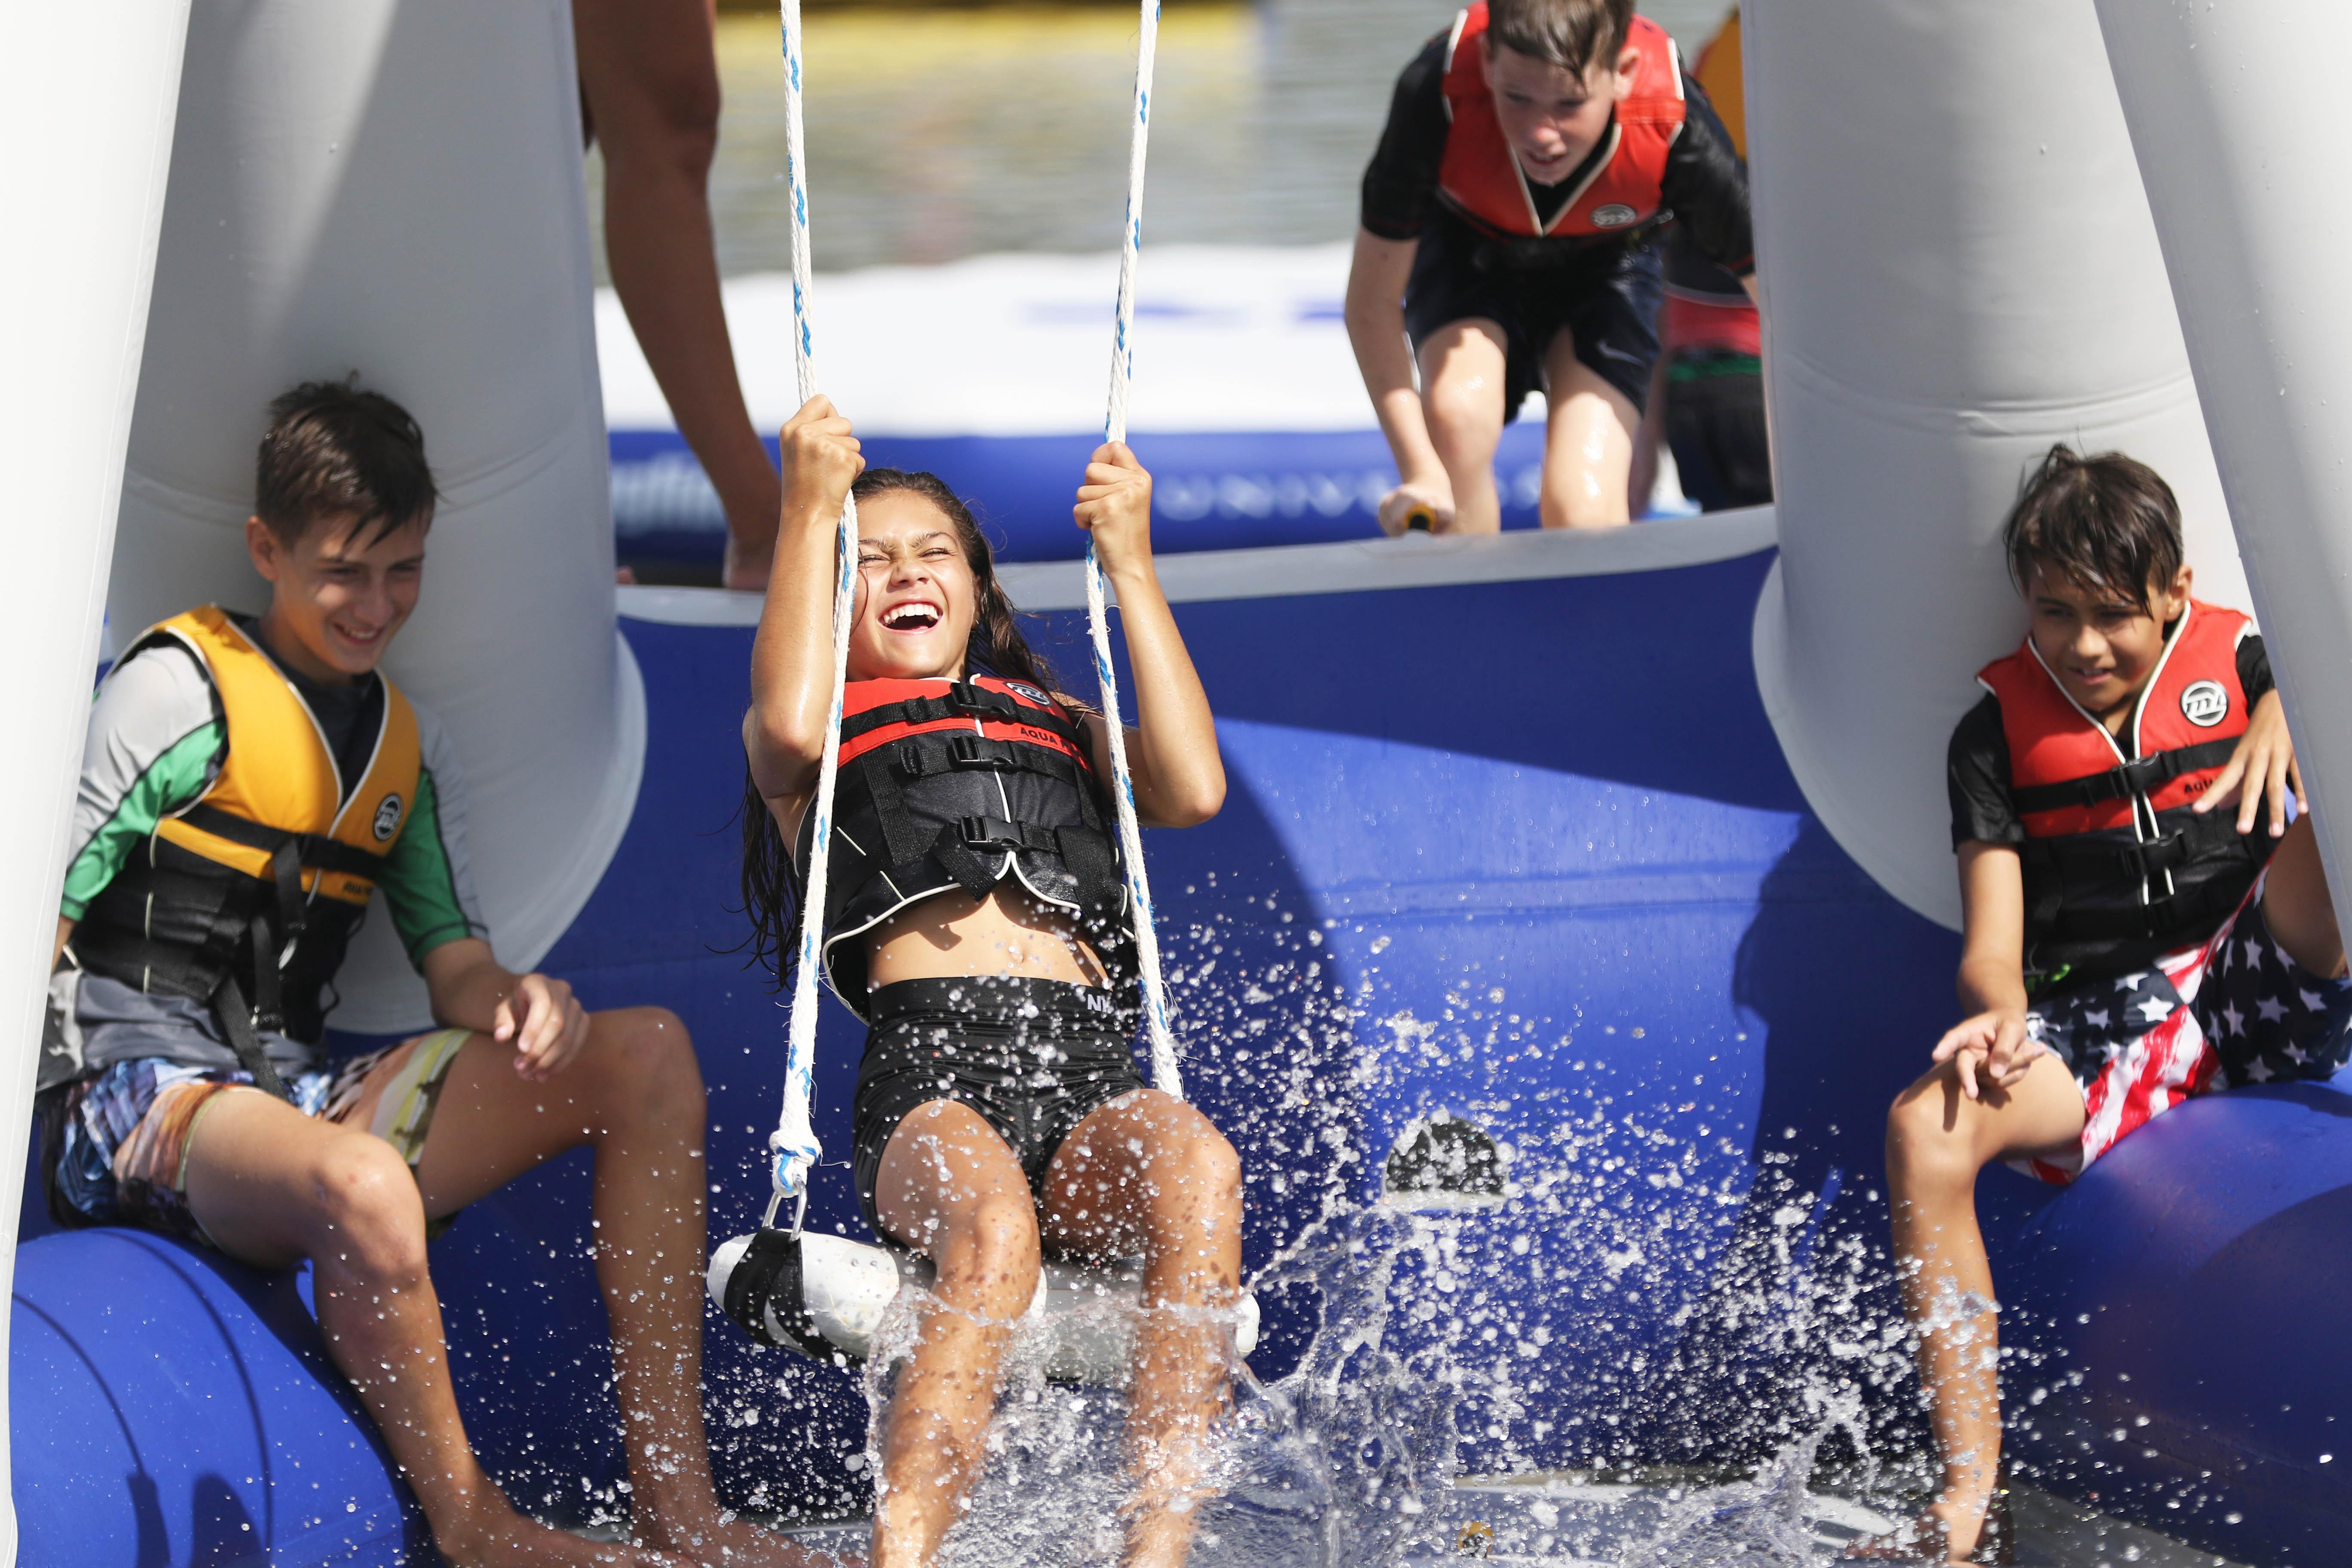 Kids enjoying a water park are shown (Photo courtesy of Water Warrior Island)